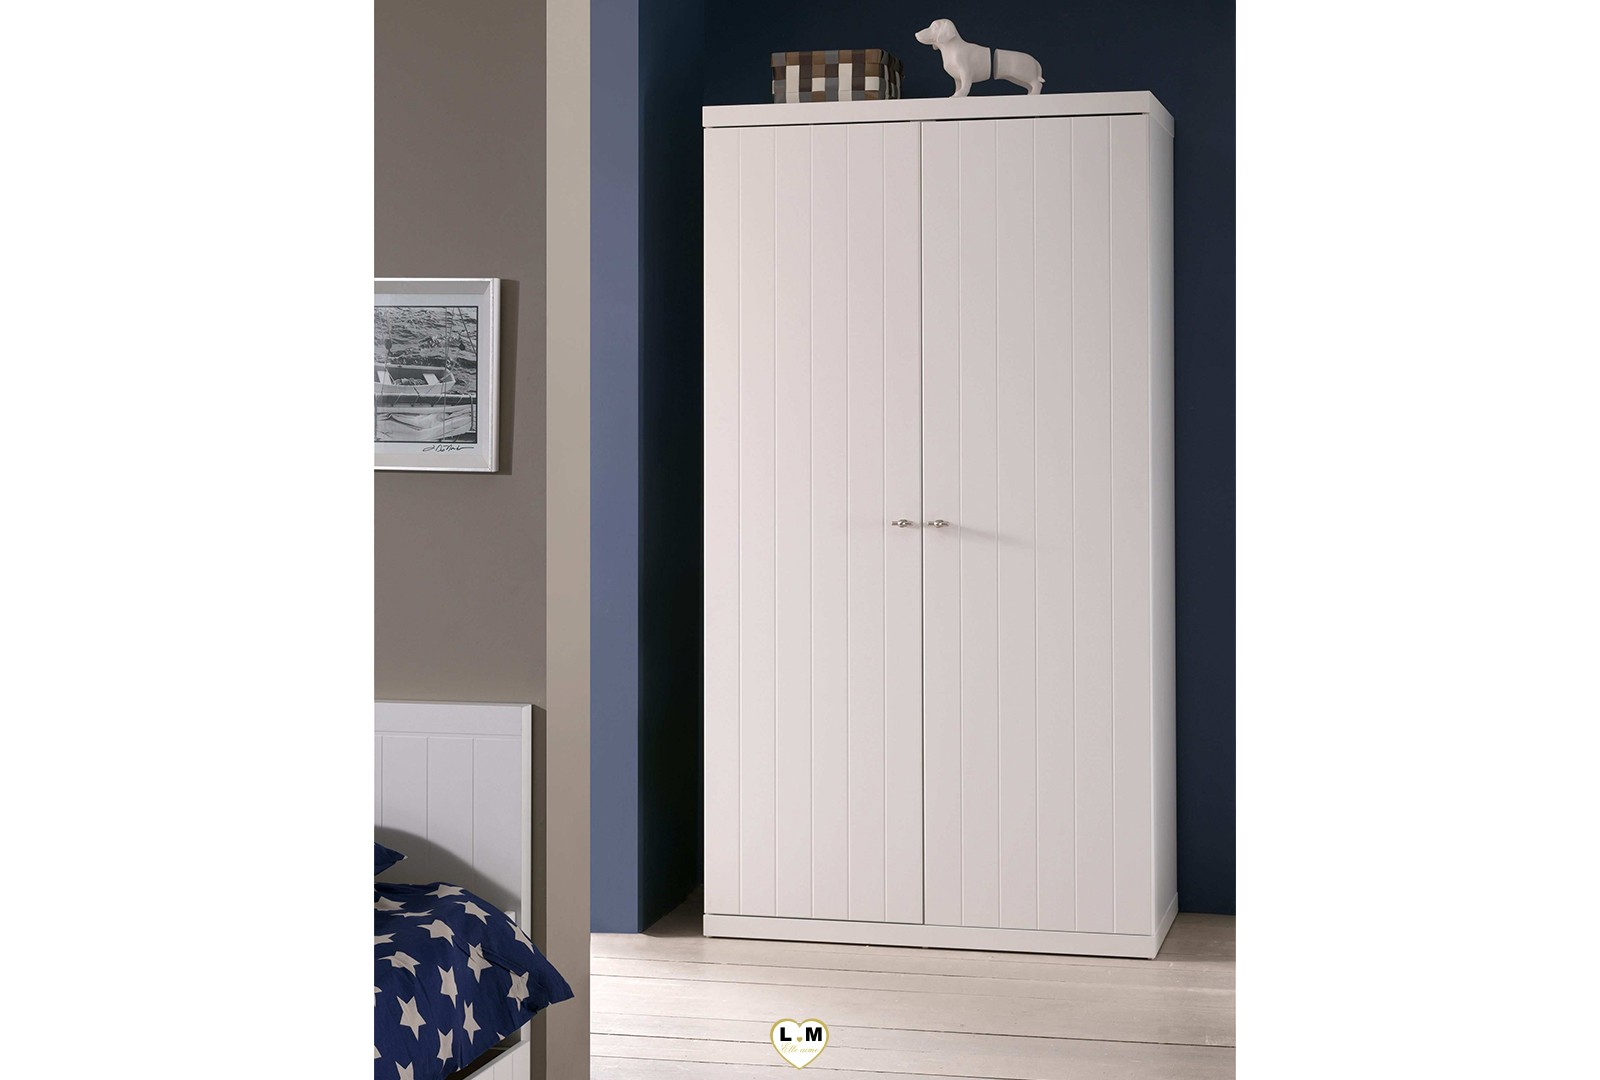 robinson chambre ado l 39 armoire 2 portes lignemeuble com. Black Bedroom Furniture Sets. Home Design Ideas